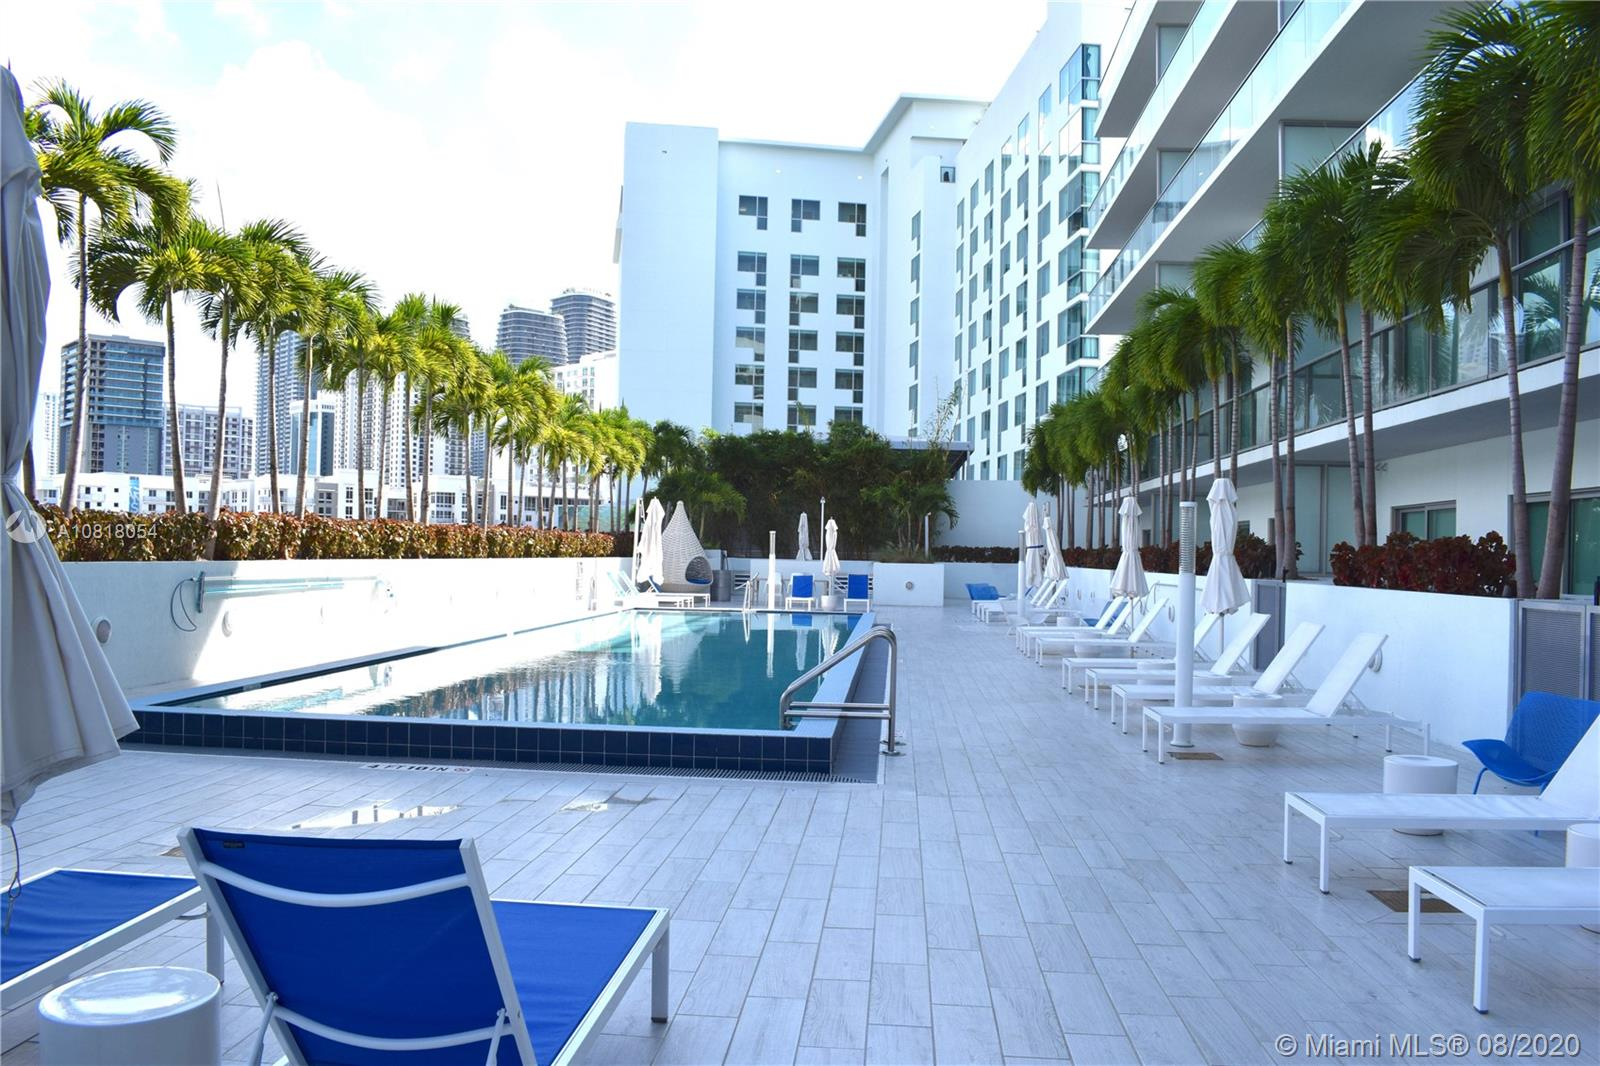 Le Parc At Brickell #408 - 1600 SW 1st Ave #408, Miami, FL 33129